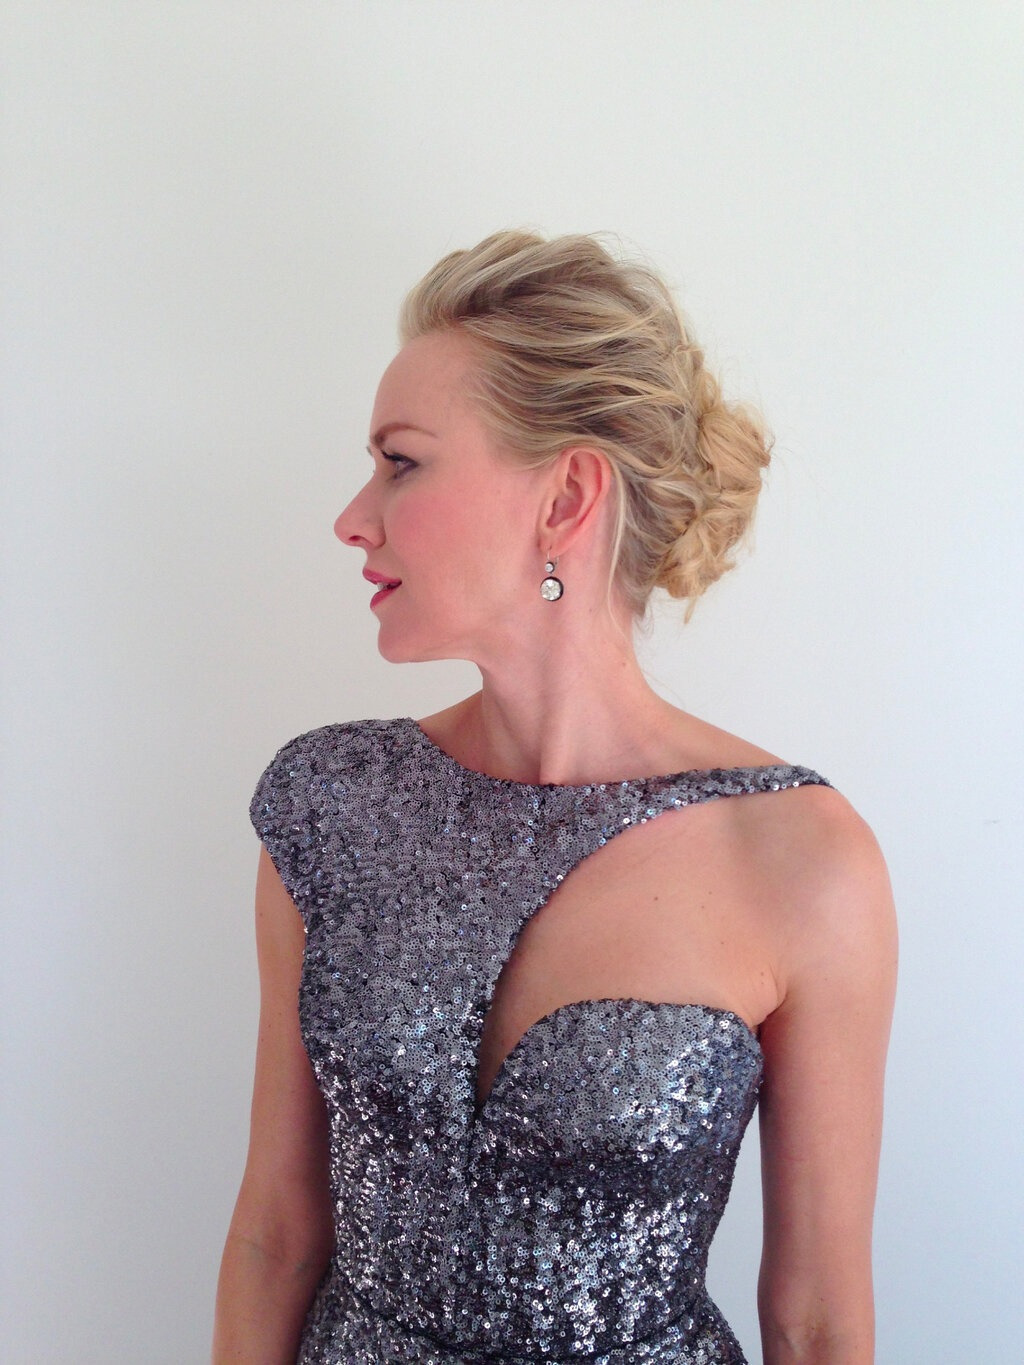 Naomi Watts - 2013 Oscars, February 24th 2013 VISION! I am filled with perfect peace & joy.